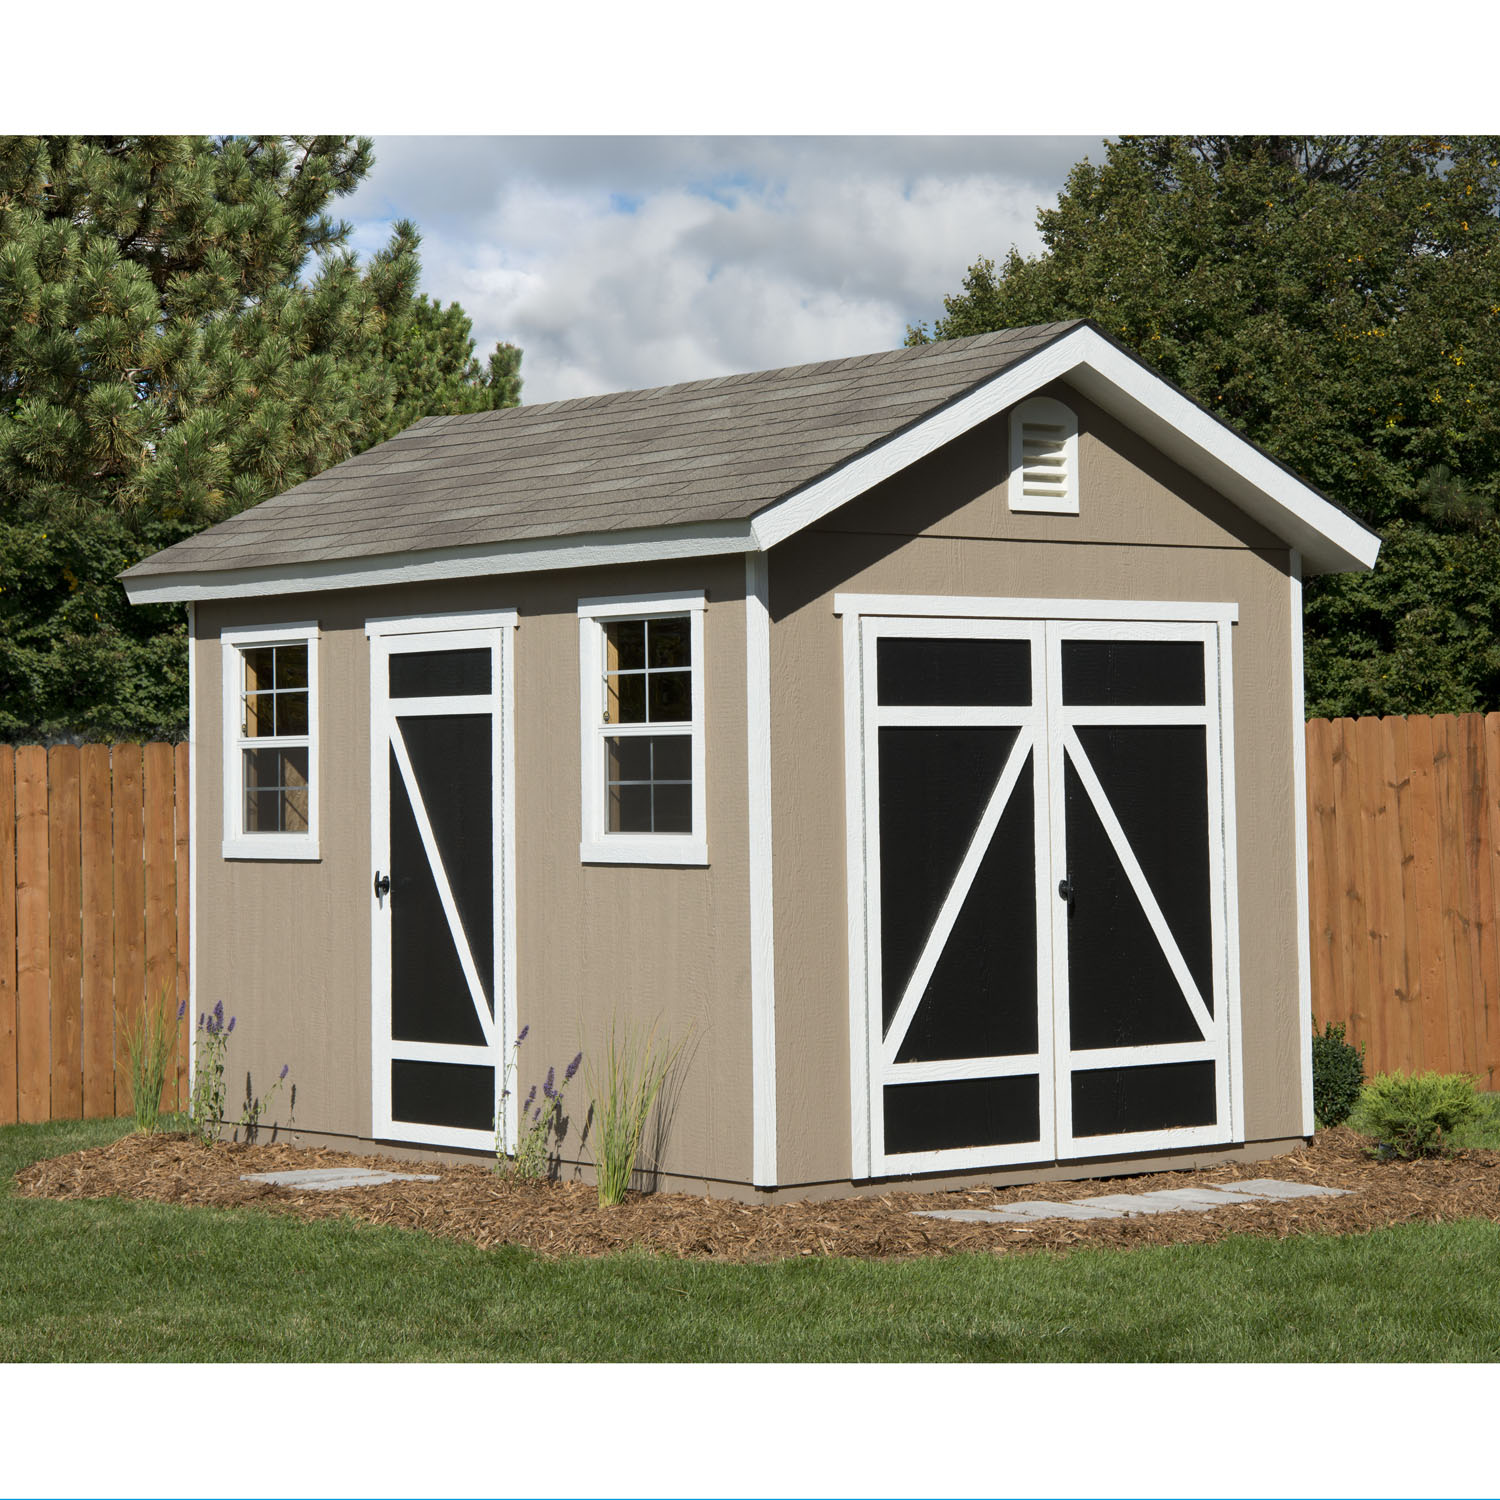 heartland shed sheds foundation club craftsman dynamicpeople